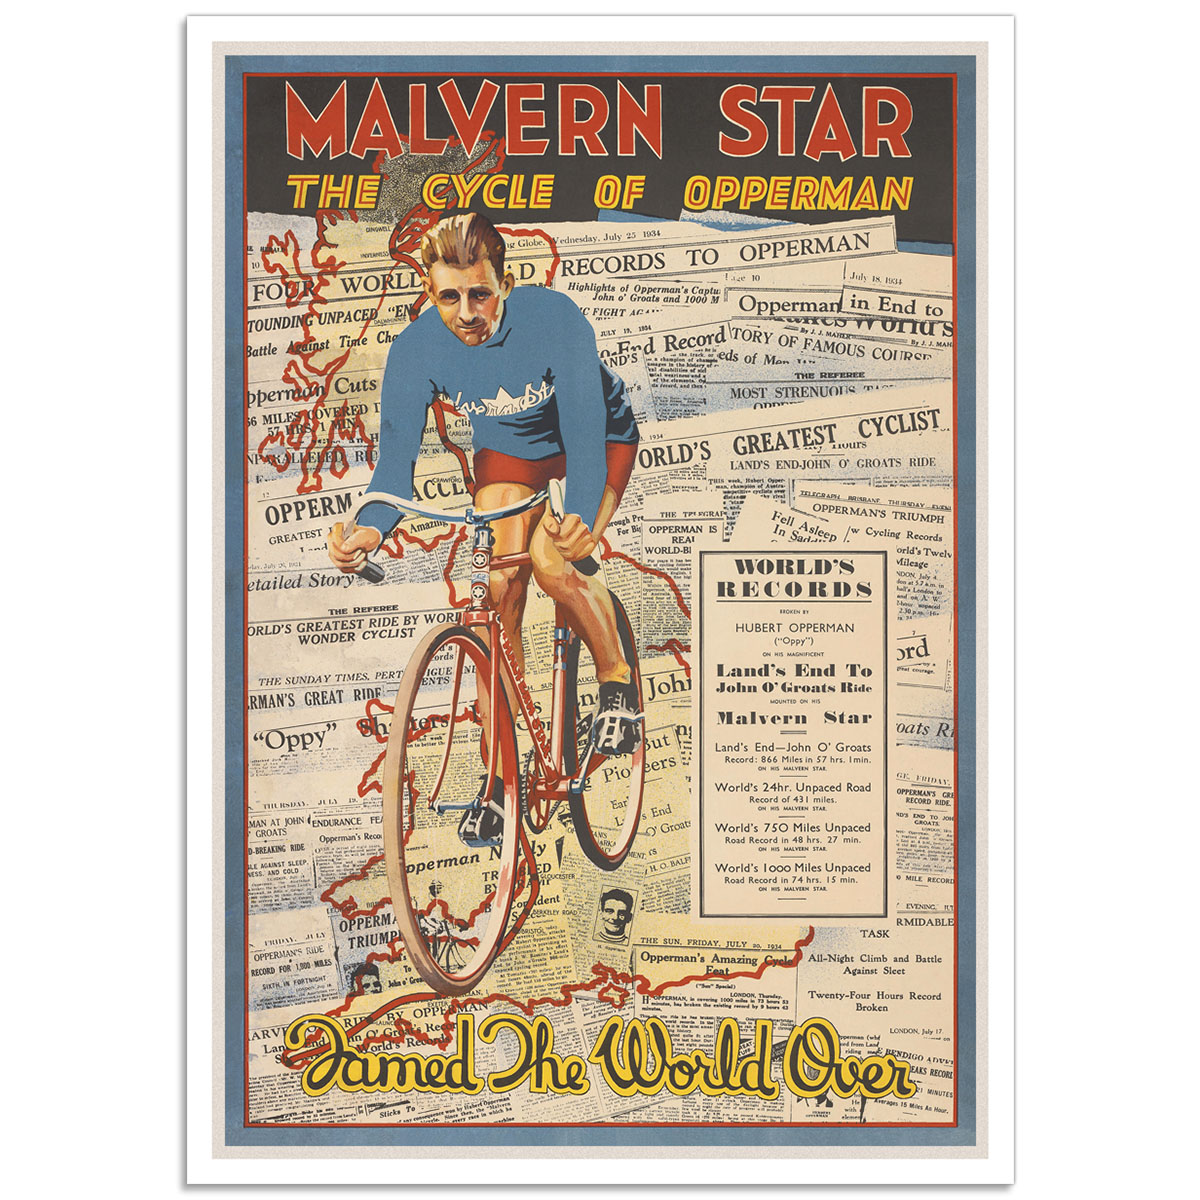 Vintage Advertising Poster - Malvern Star Opperman